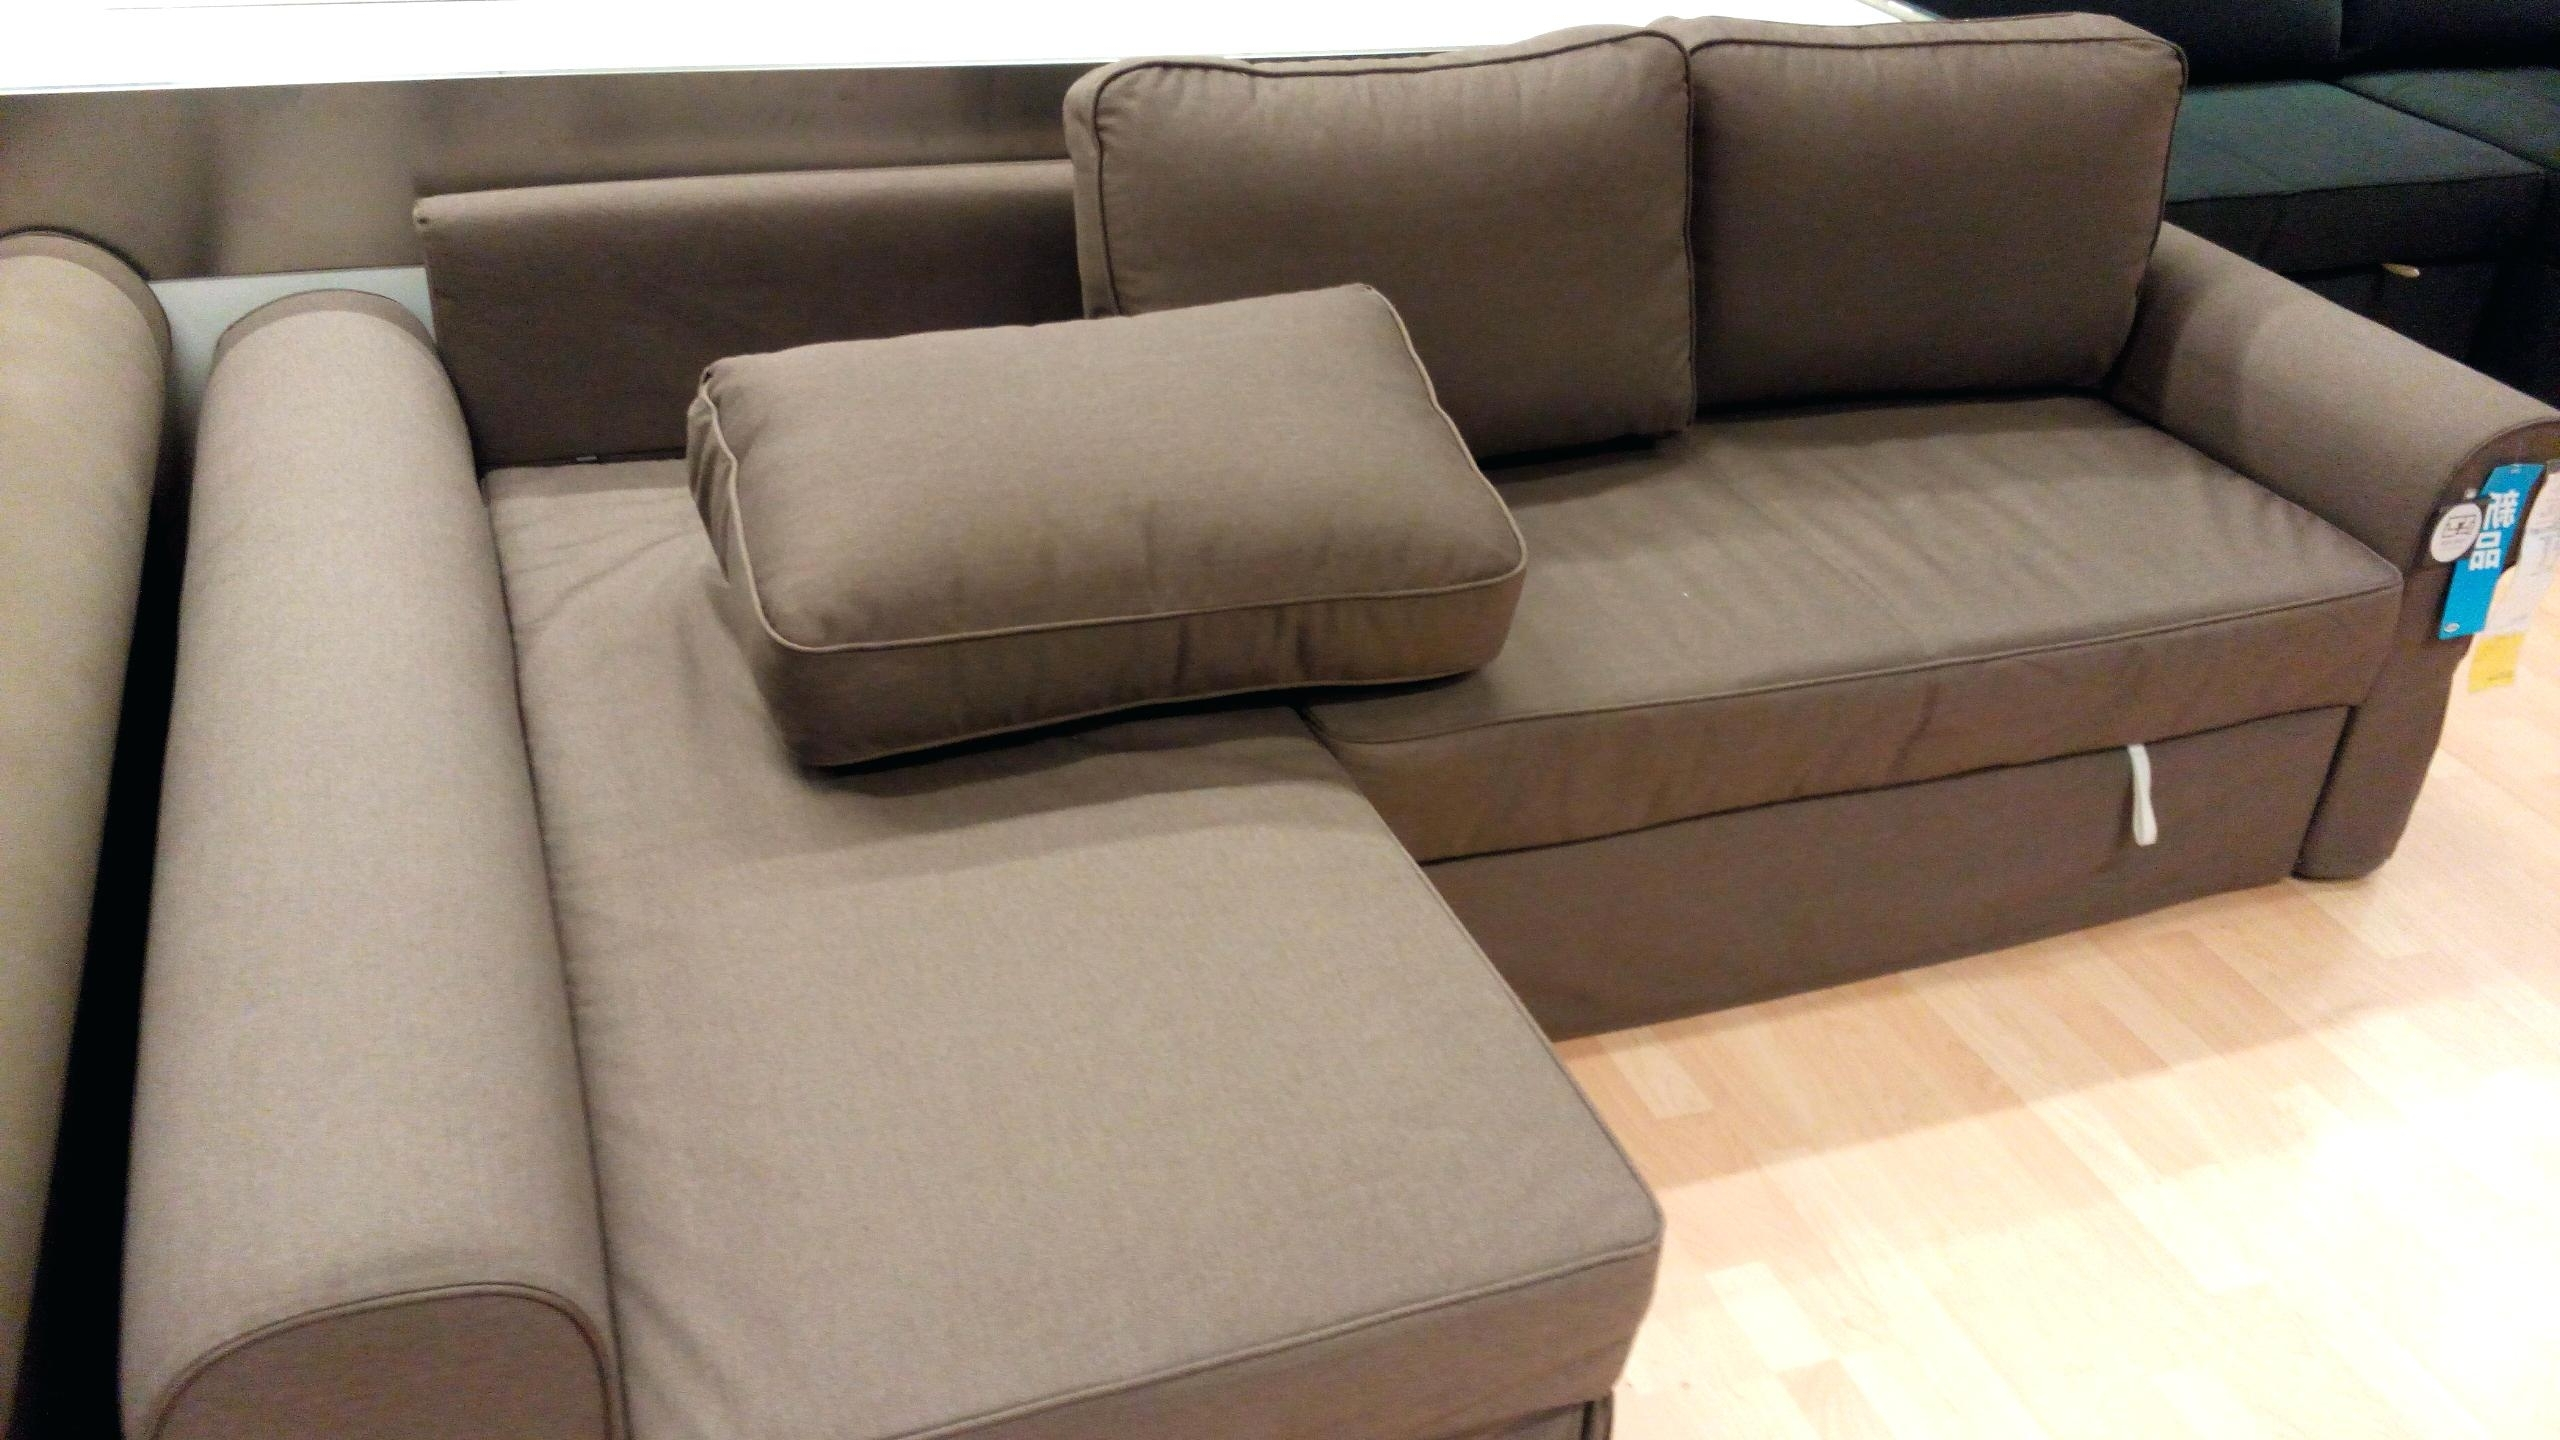 Russ Sofa Beds With Chaise Regarding Popular Russ Sofa Bed With Chaise – Mariaalcocer (View 11 of 15)